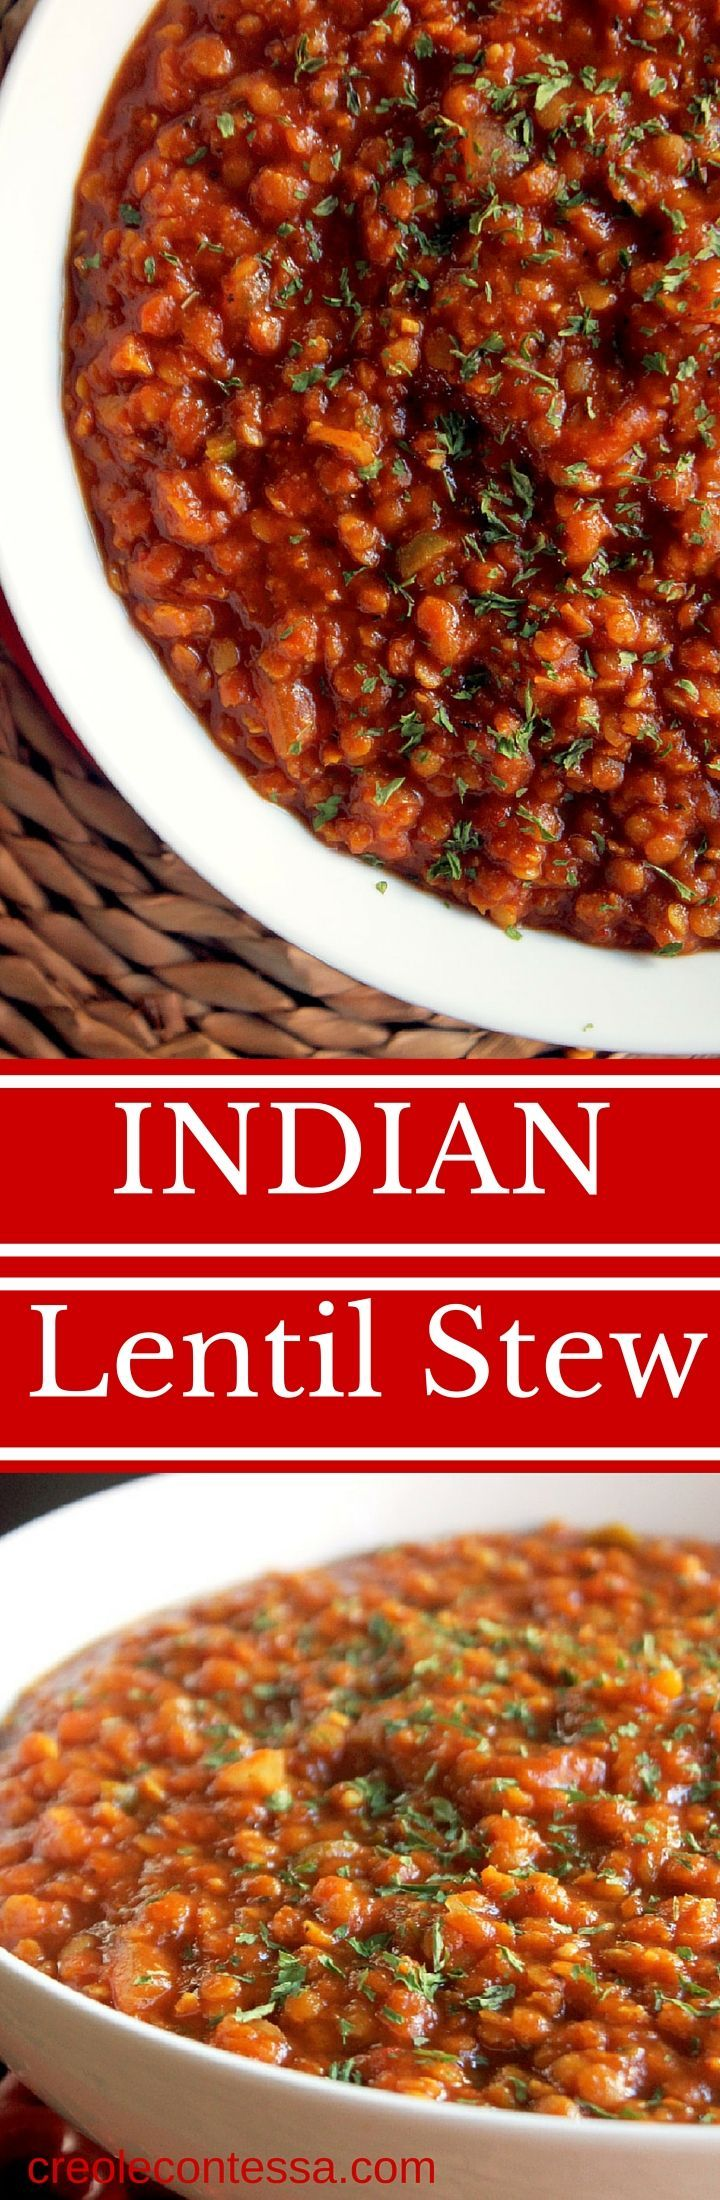 Slow Cooker Indian Lentil Stew-Creole Contessa  http://creolecontessa.com/2015/09/slow-cooker-indian-lentil-stew/  ingredients:  3 c red lentils 3 1/2 c crushed tomatoes 6 c veg broth 1 white onion  2 cloves garlic  3 Serrano chili  1 T creole seasoning 1 T garlic powder 1 T onion powder 1/2 T black pepper 1/2 T curry powder 1/2 T paprika 1/2 T chili powder 1/2 T garam masala powder 1/2 T turmeric   1/2 T ginger powder 2 T cilantro (garnish)